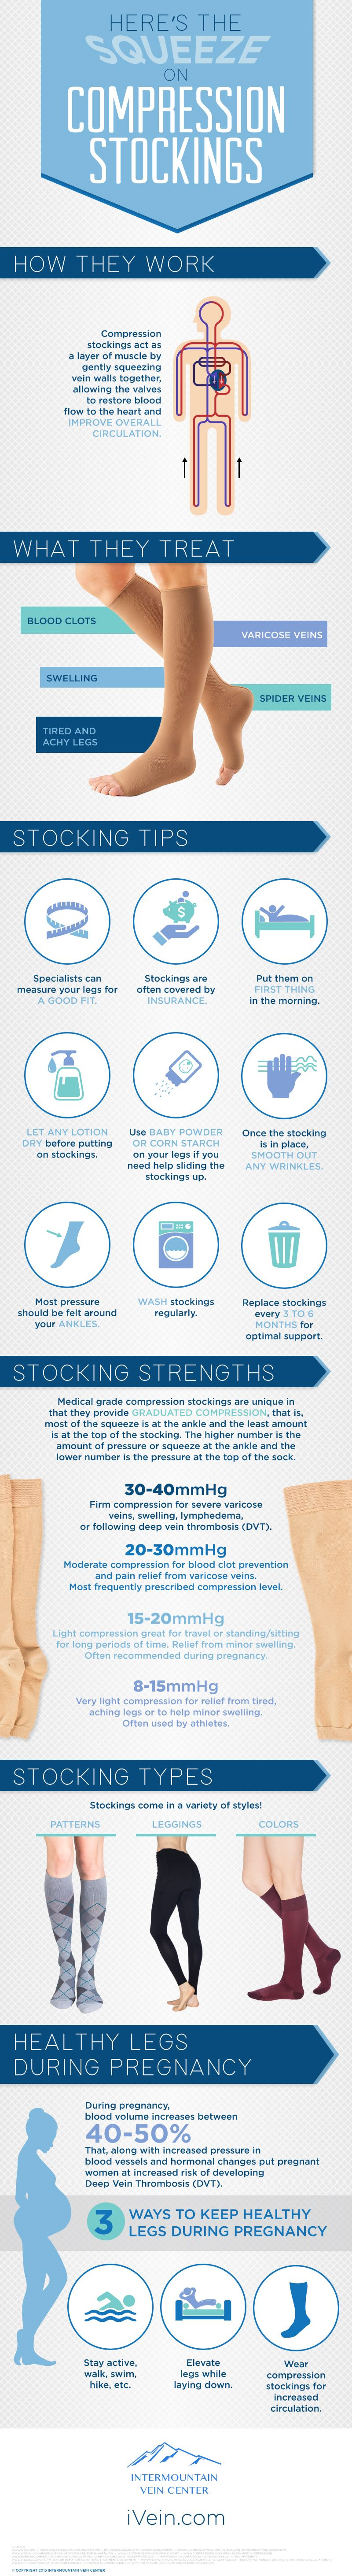 Compression-Stockings-For-Varicose-Veins-Infographic